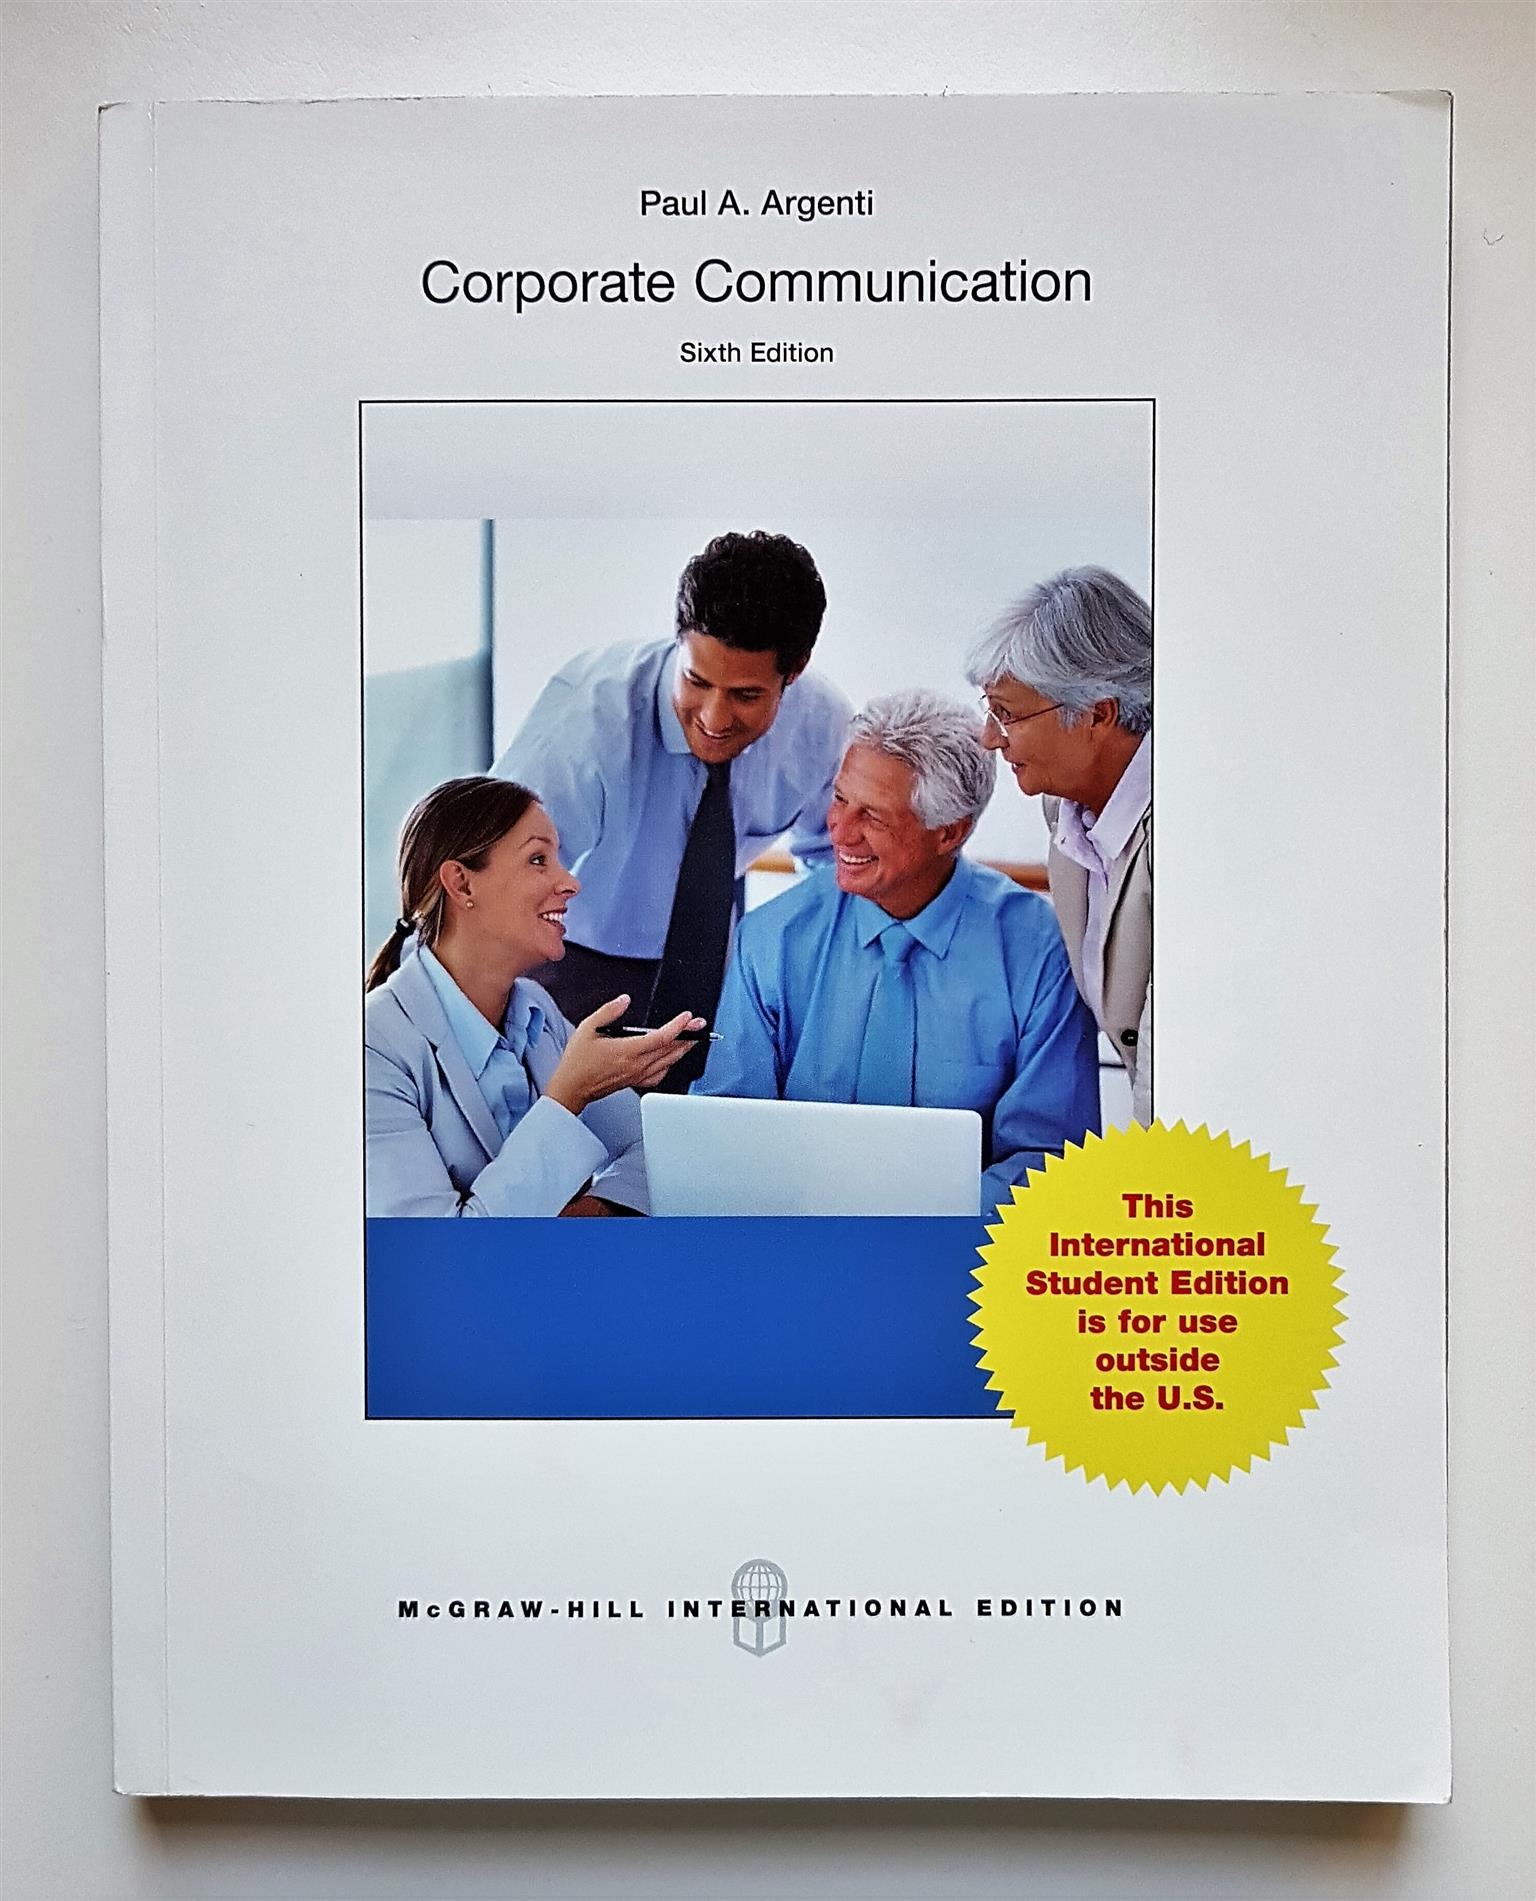 Corporate Communication - Paul A. Argenti